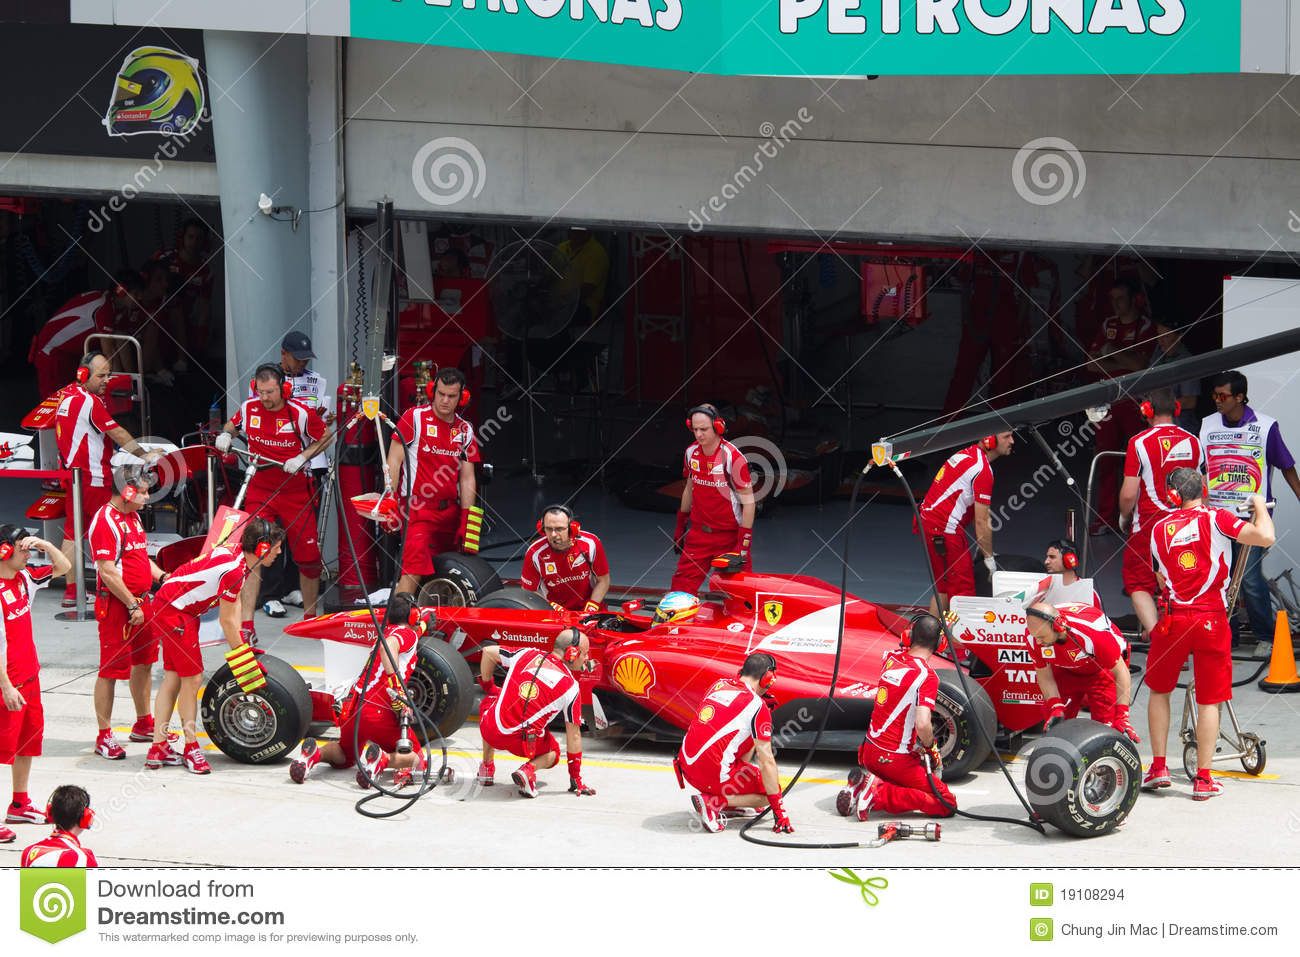 F1 driver Fernando Alonso does a trial pit